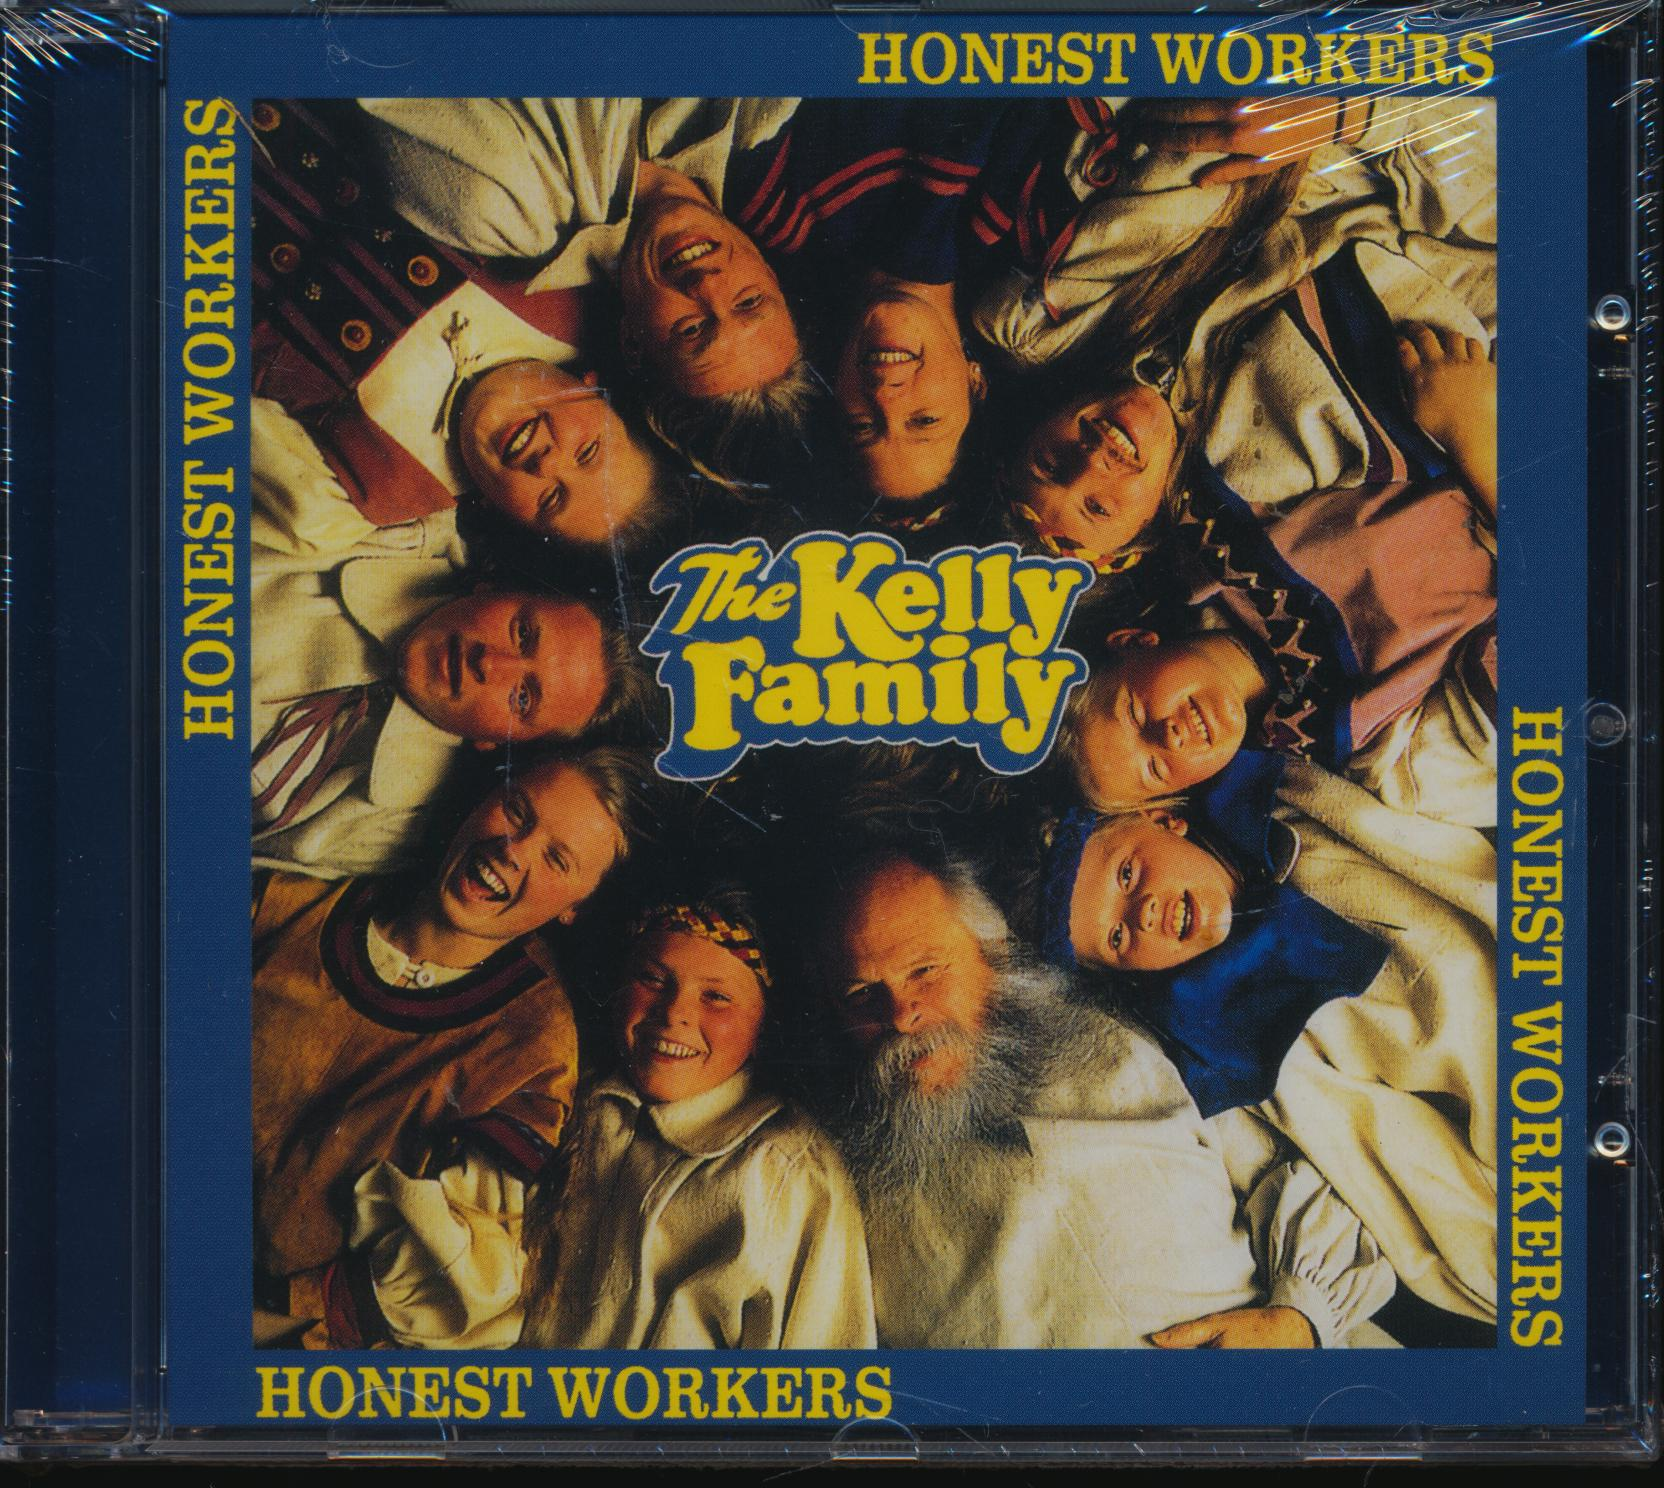 Cd Kelly Family - Honest Workers ☆ SUPERSHOP ☆ tvoj obchod ☆ cd ... 030a2def87b